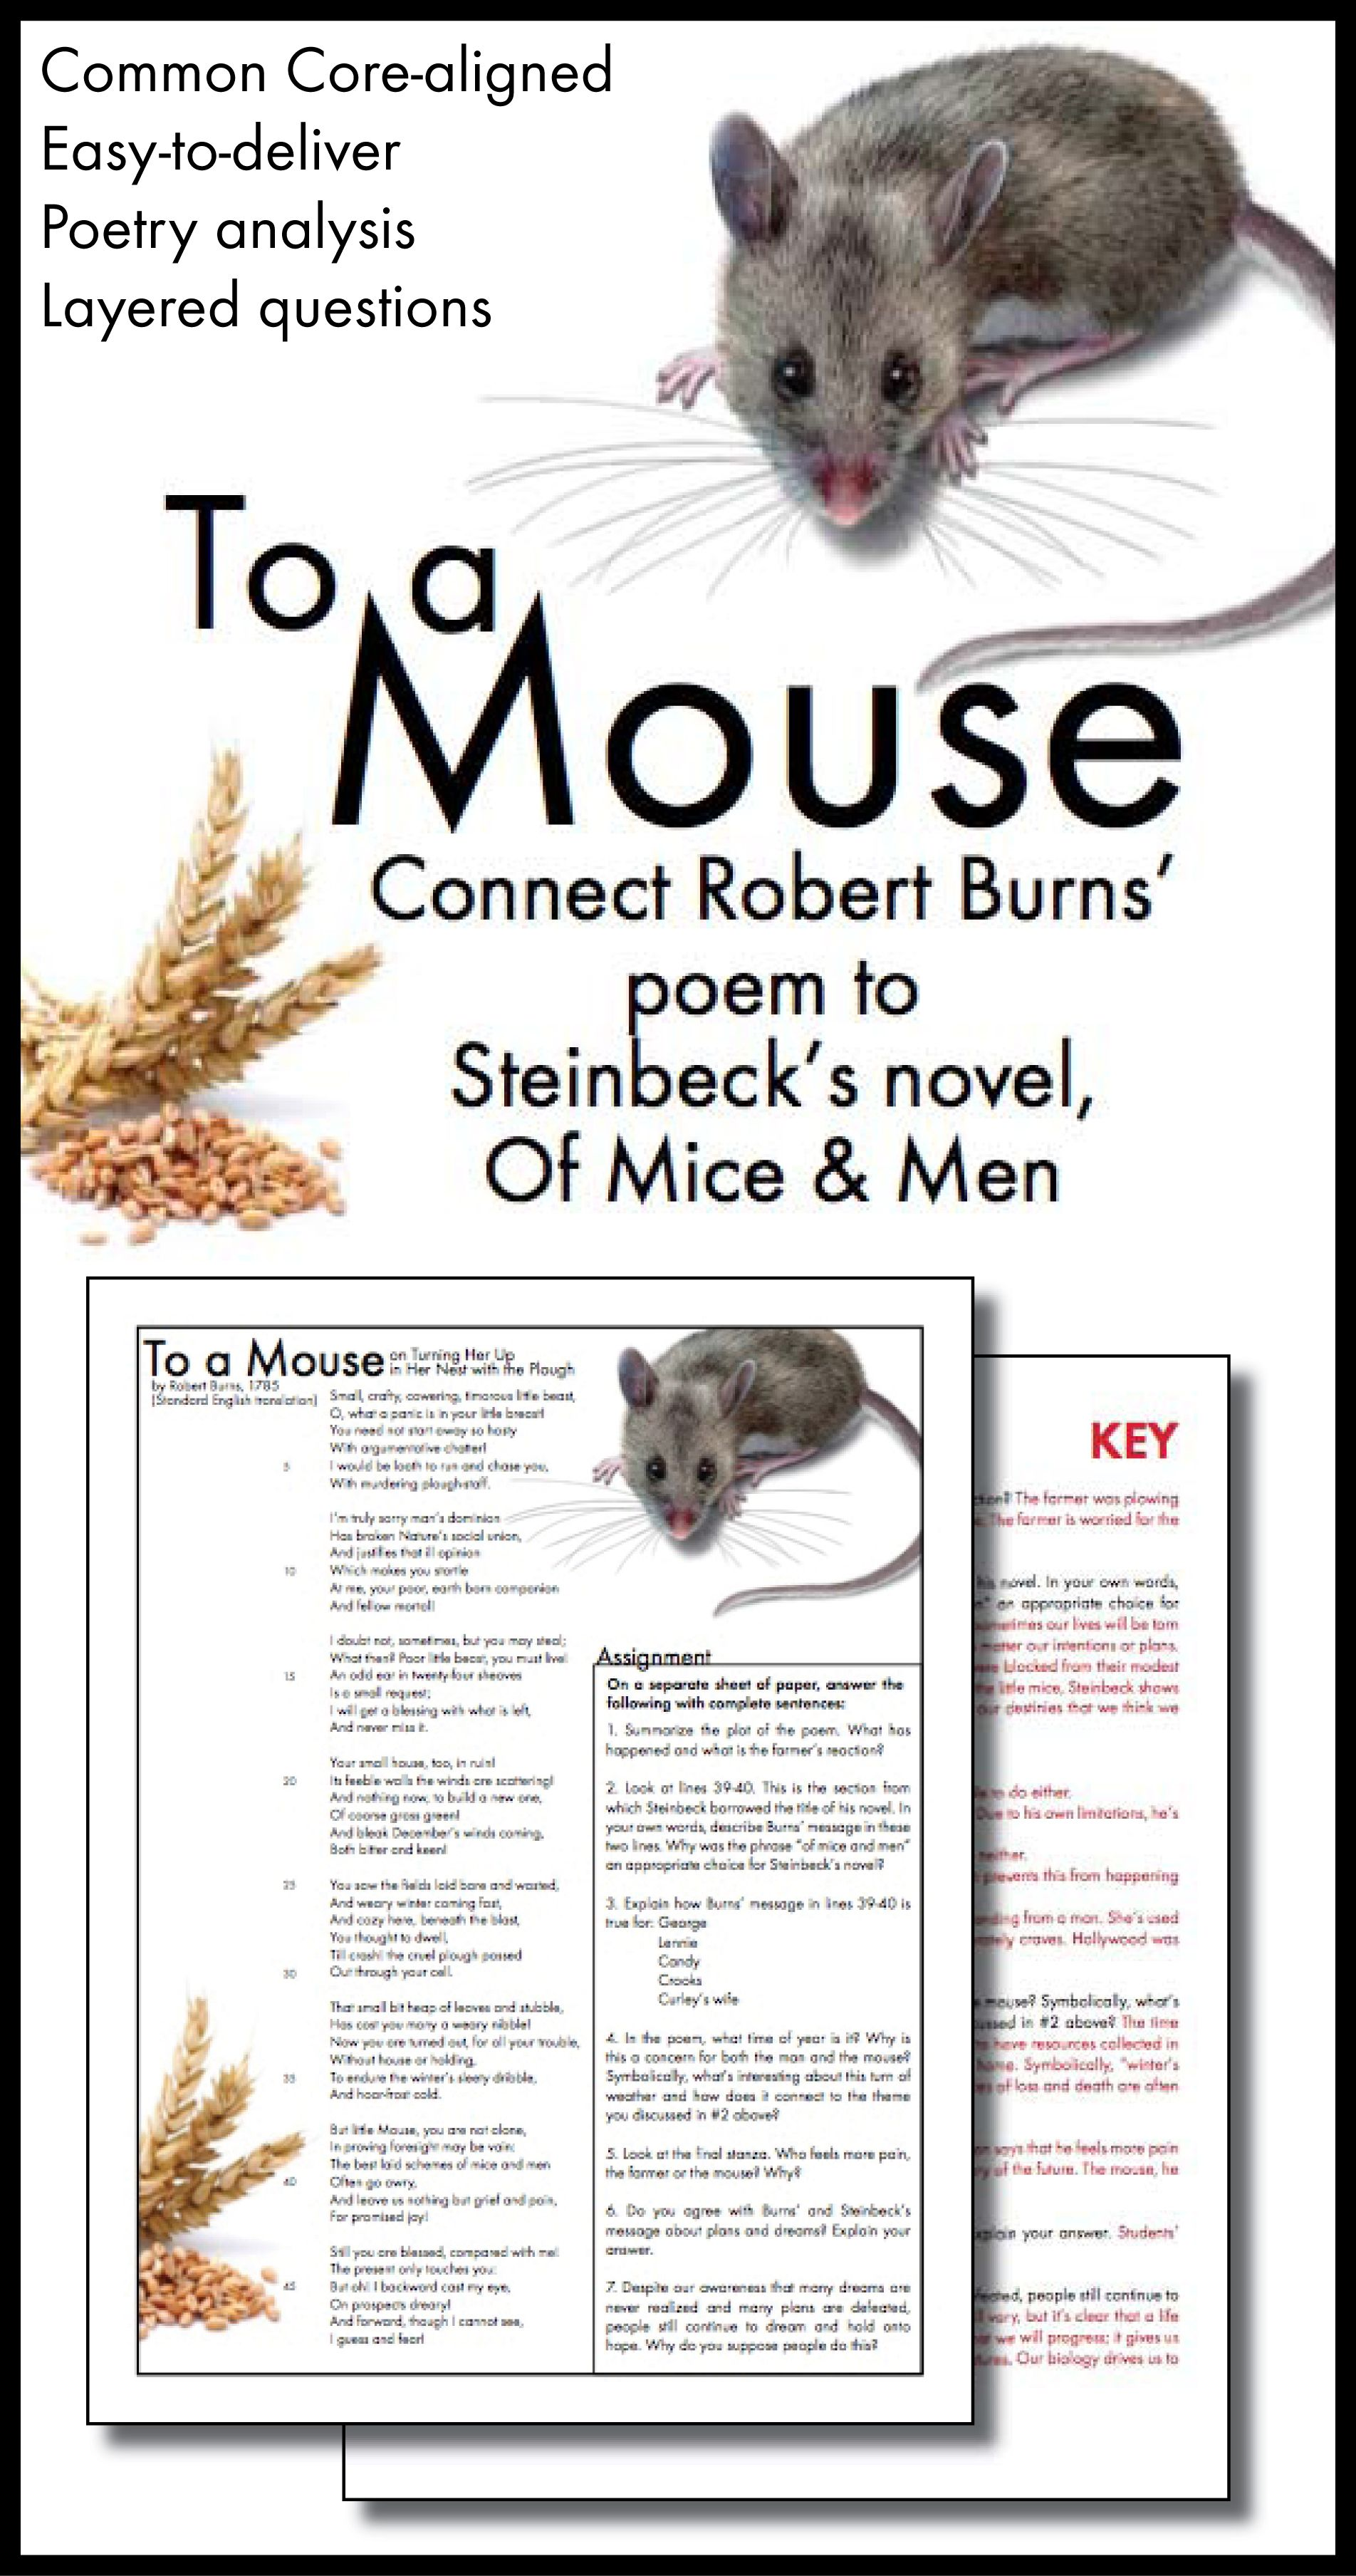 the role of lennie in georges problems in steinbecks of mice and men Lennie small is huge and lumbering and, in many ways of mice and men john steinbeck buy share buy home literature notes of his enthusiasm excites george, too lennie's innocence keeps the dream alive, but his human imperfection makes the dream impossible to realize previous.